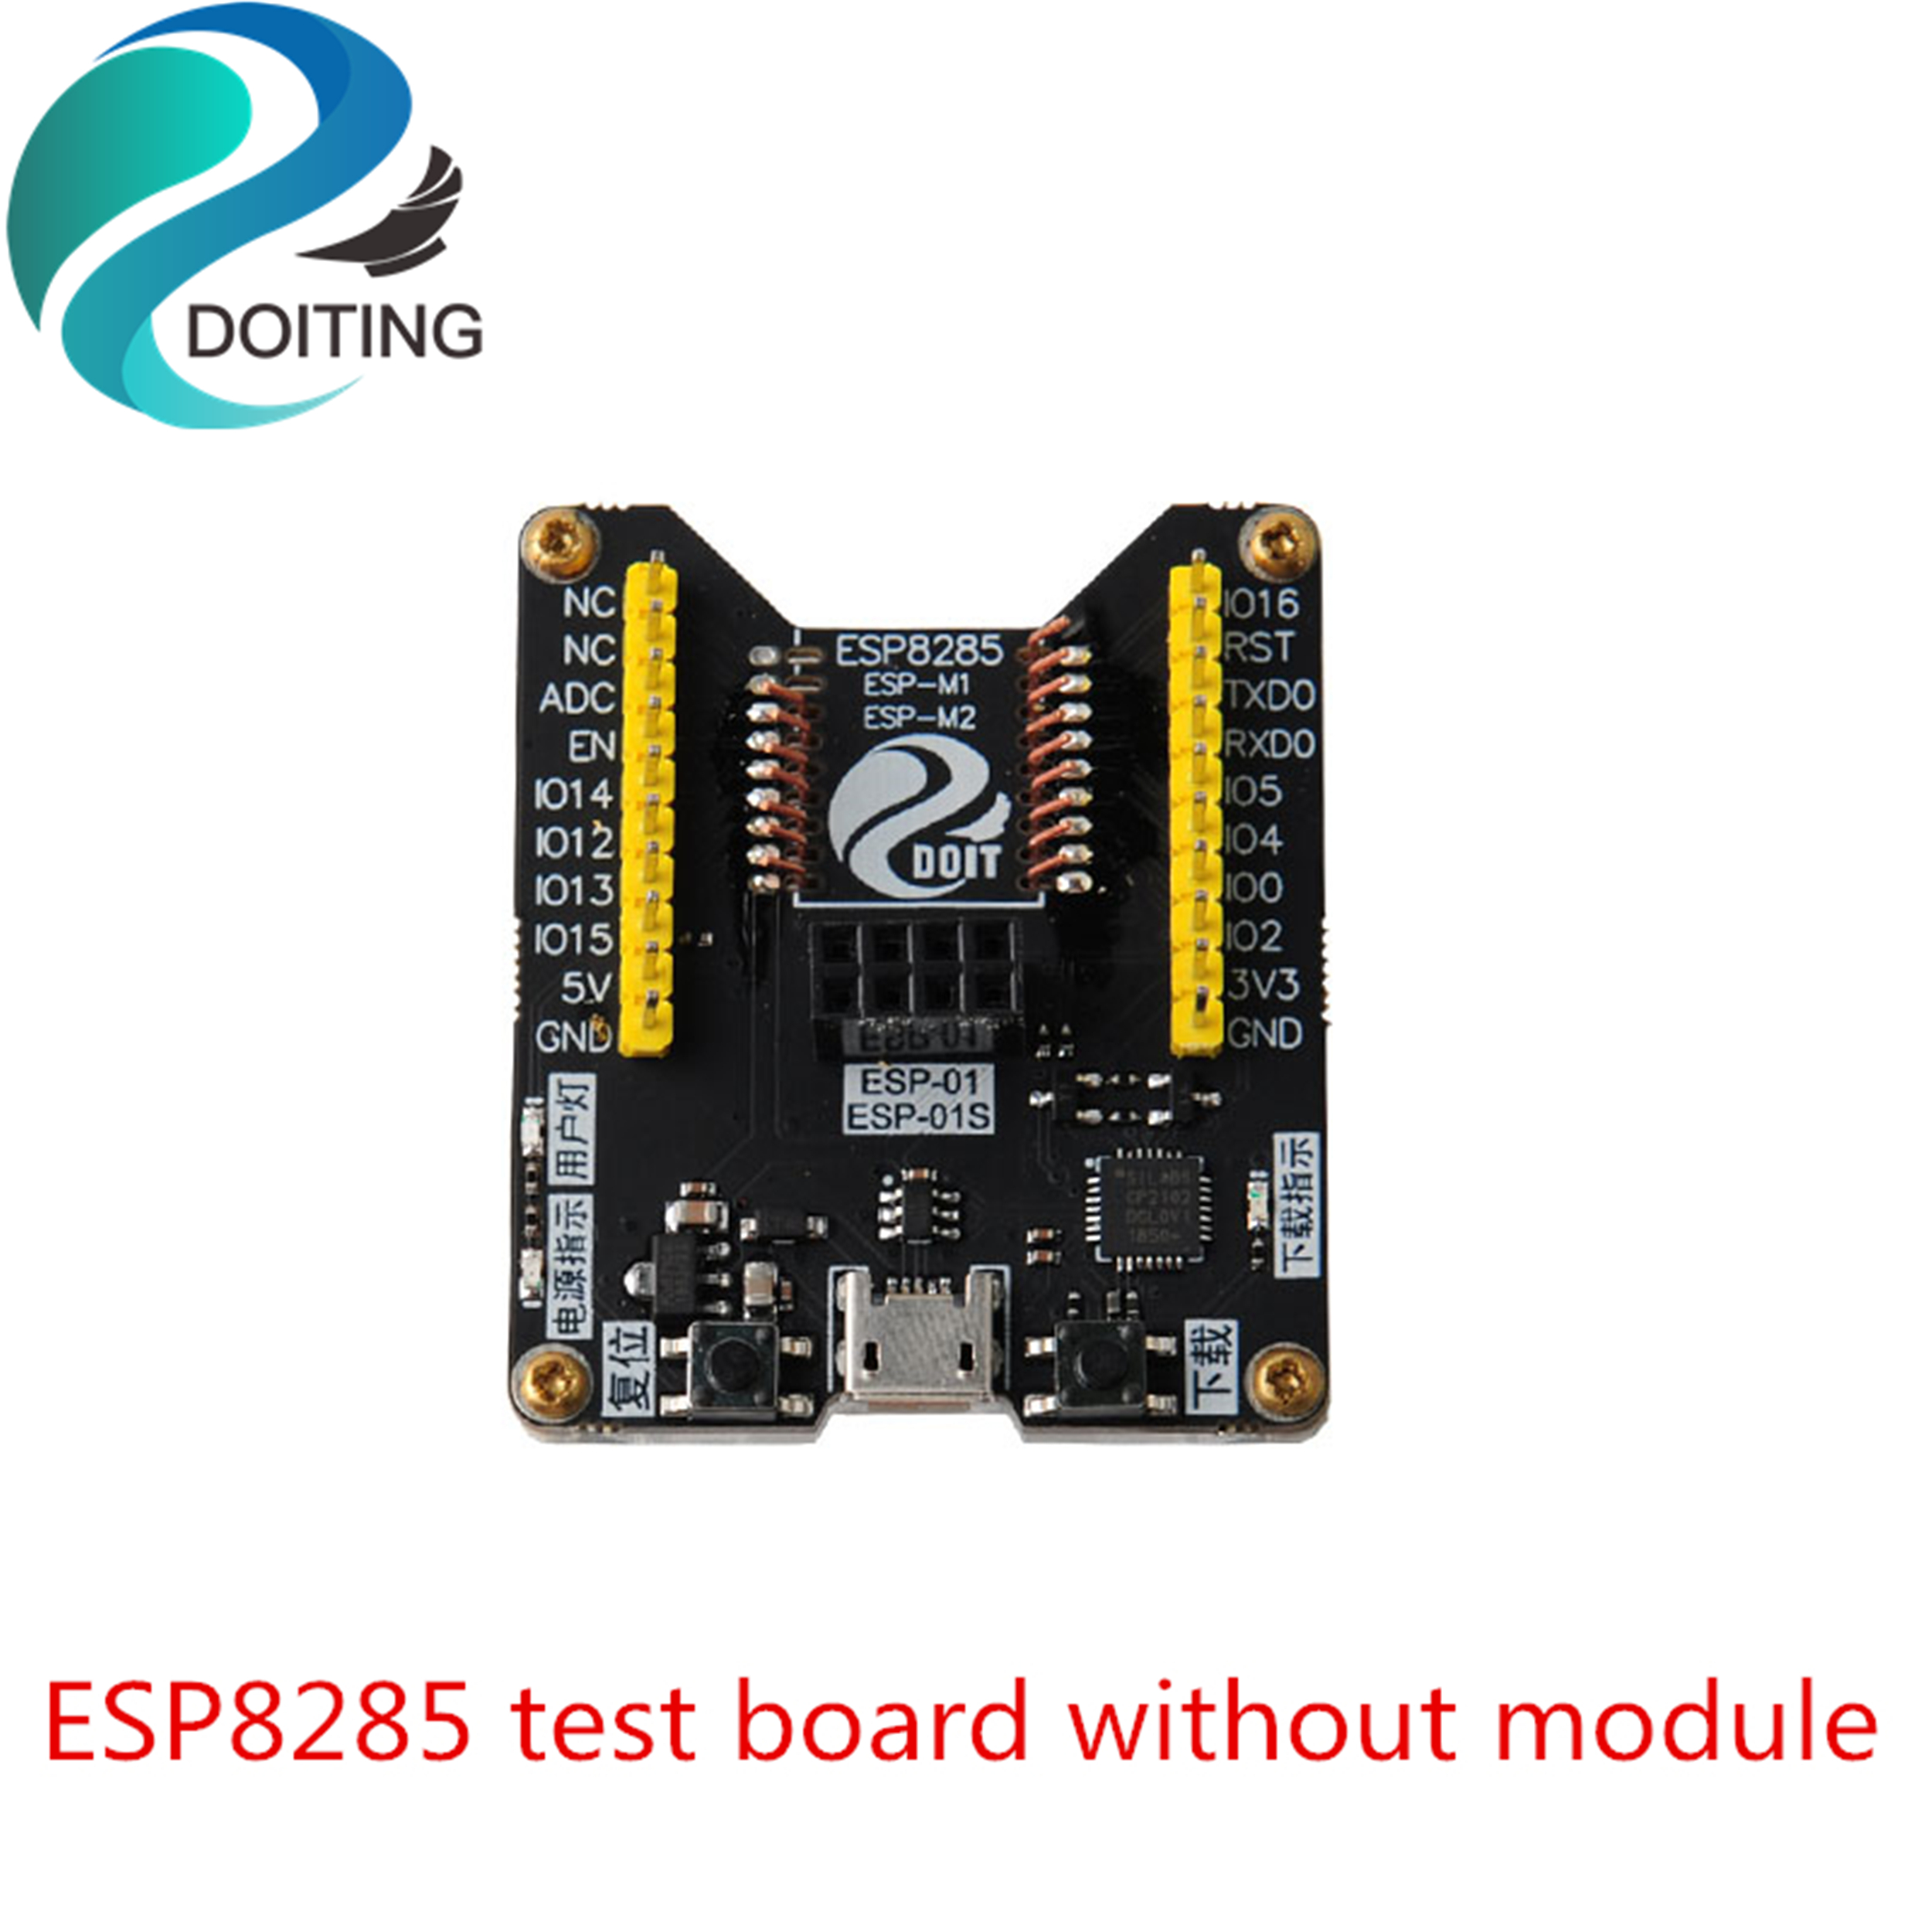 DOITING ESP8266/ESP8285 Test Board Flash Download Tool Firmware Downloader Program Flashing Support ESP12F/ESP12E/ESP07S image